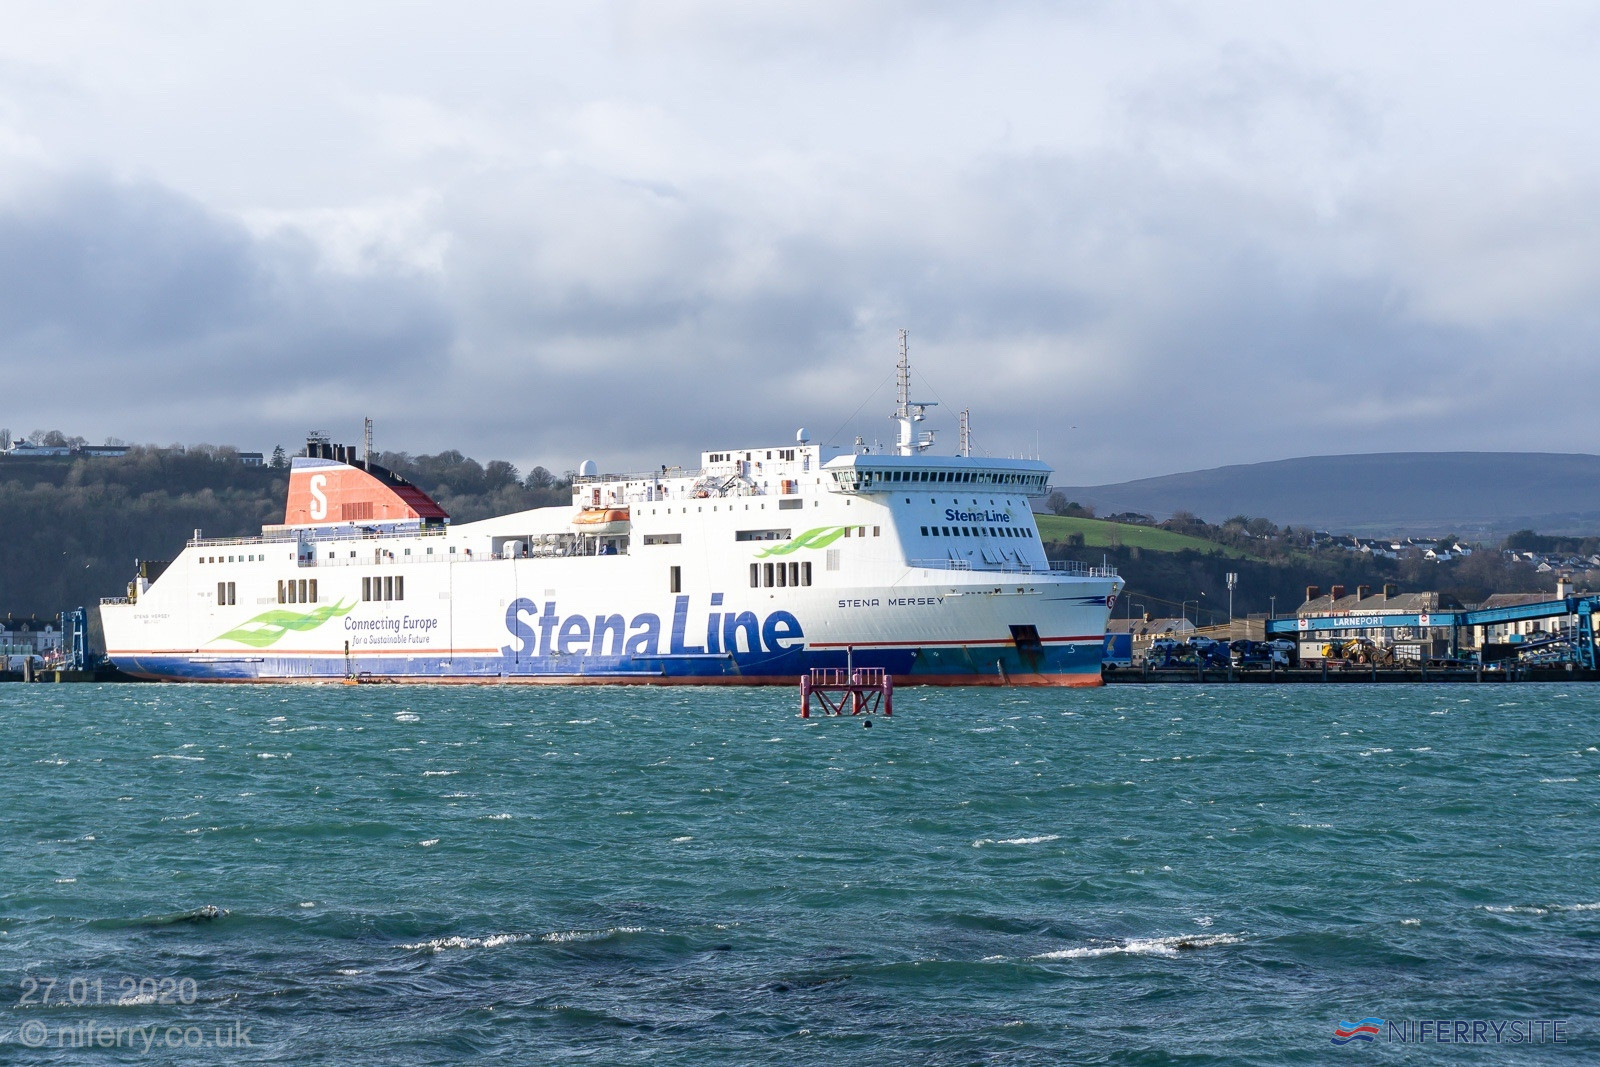 STENA MERSEY at Larne, 27.01.2020. Copyright Steven Tarbox / niferry.co.uk.